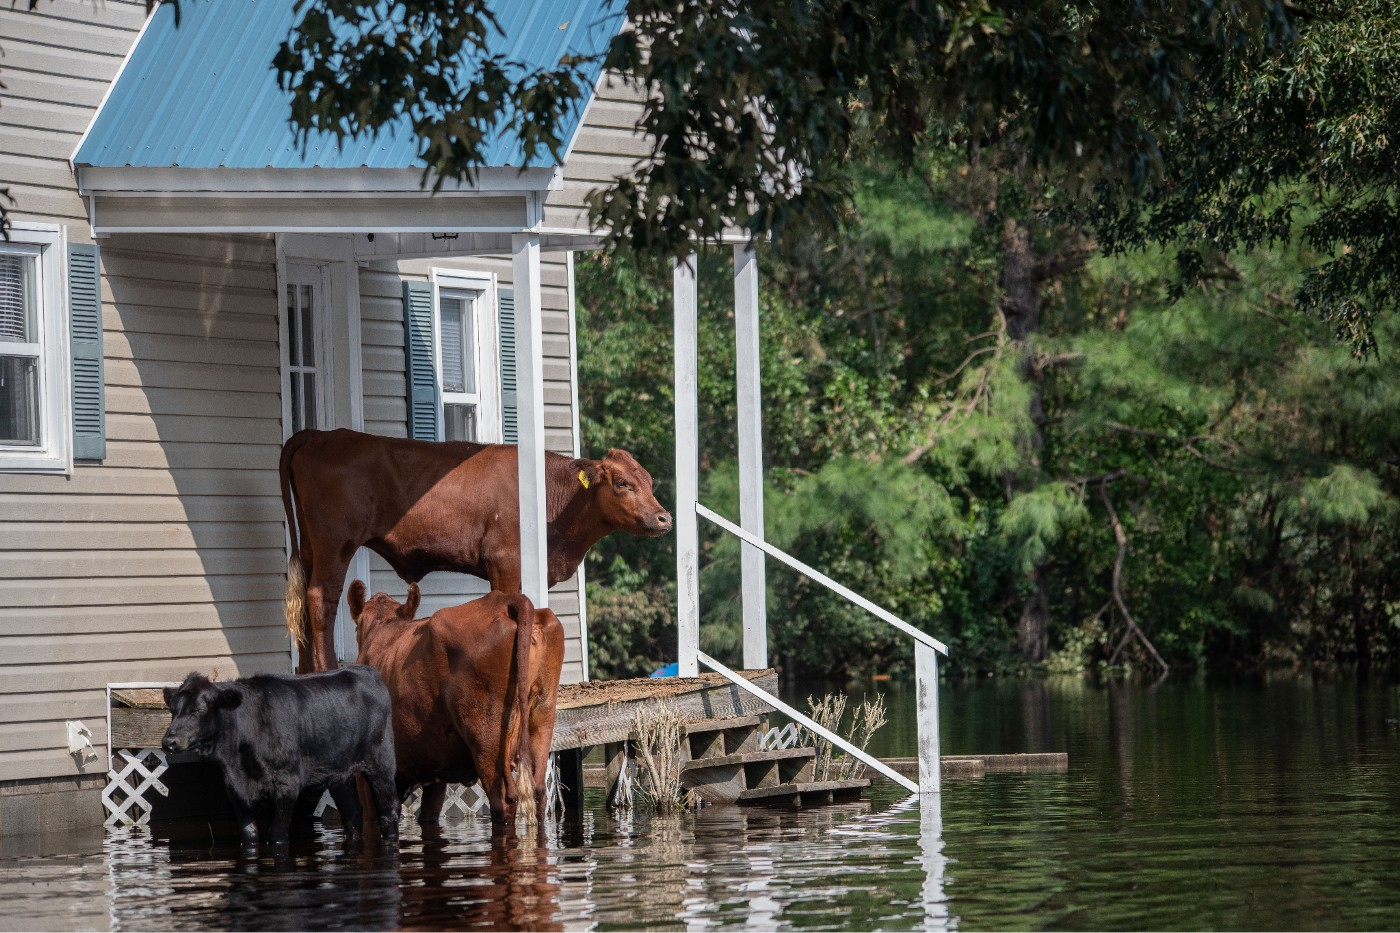 Cows stand on the front porch of a house surrounded by flood water.